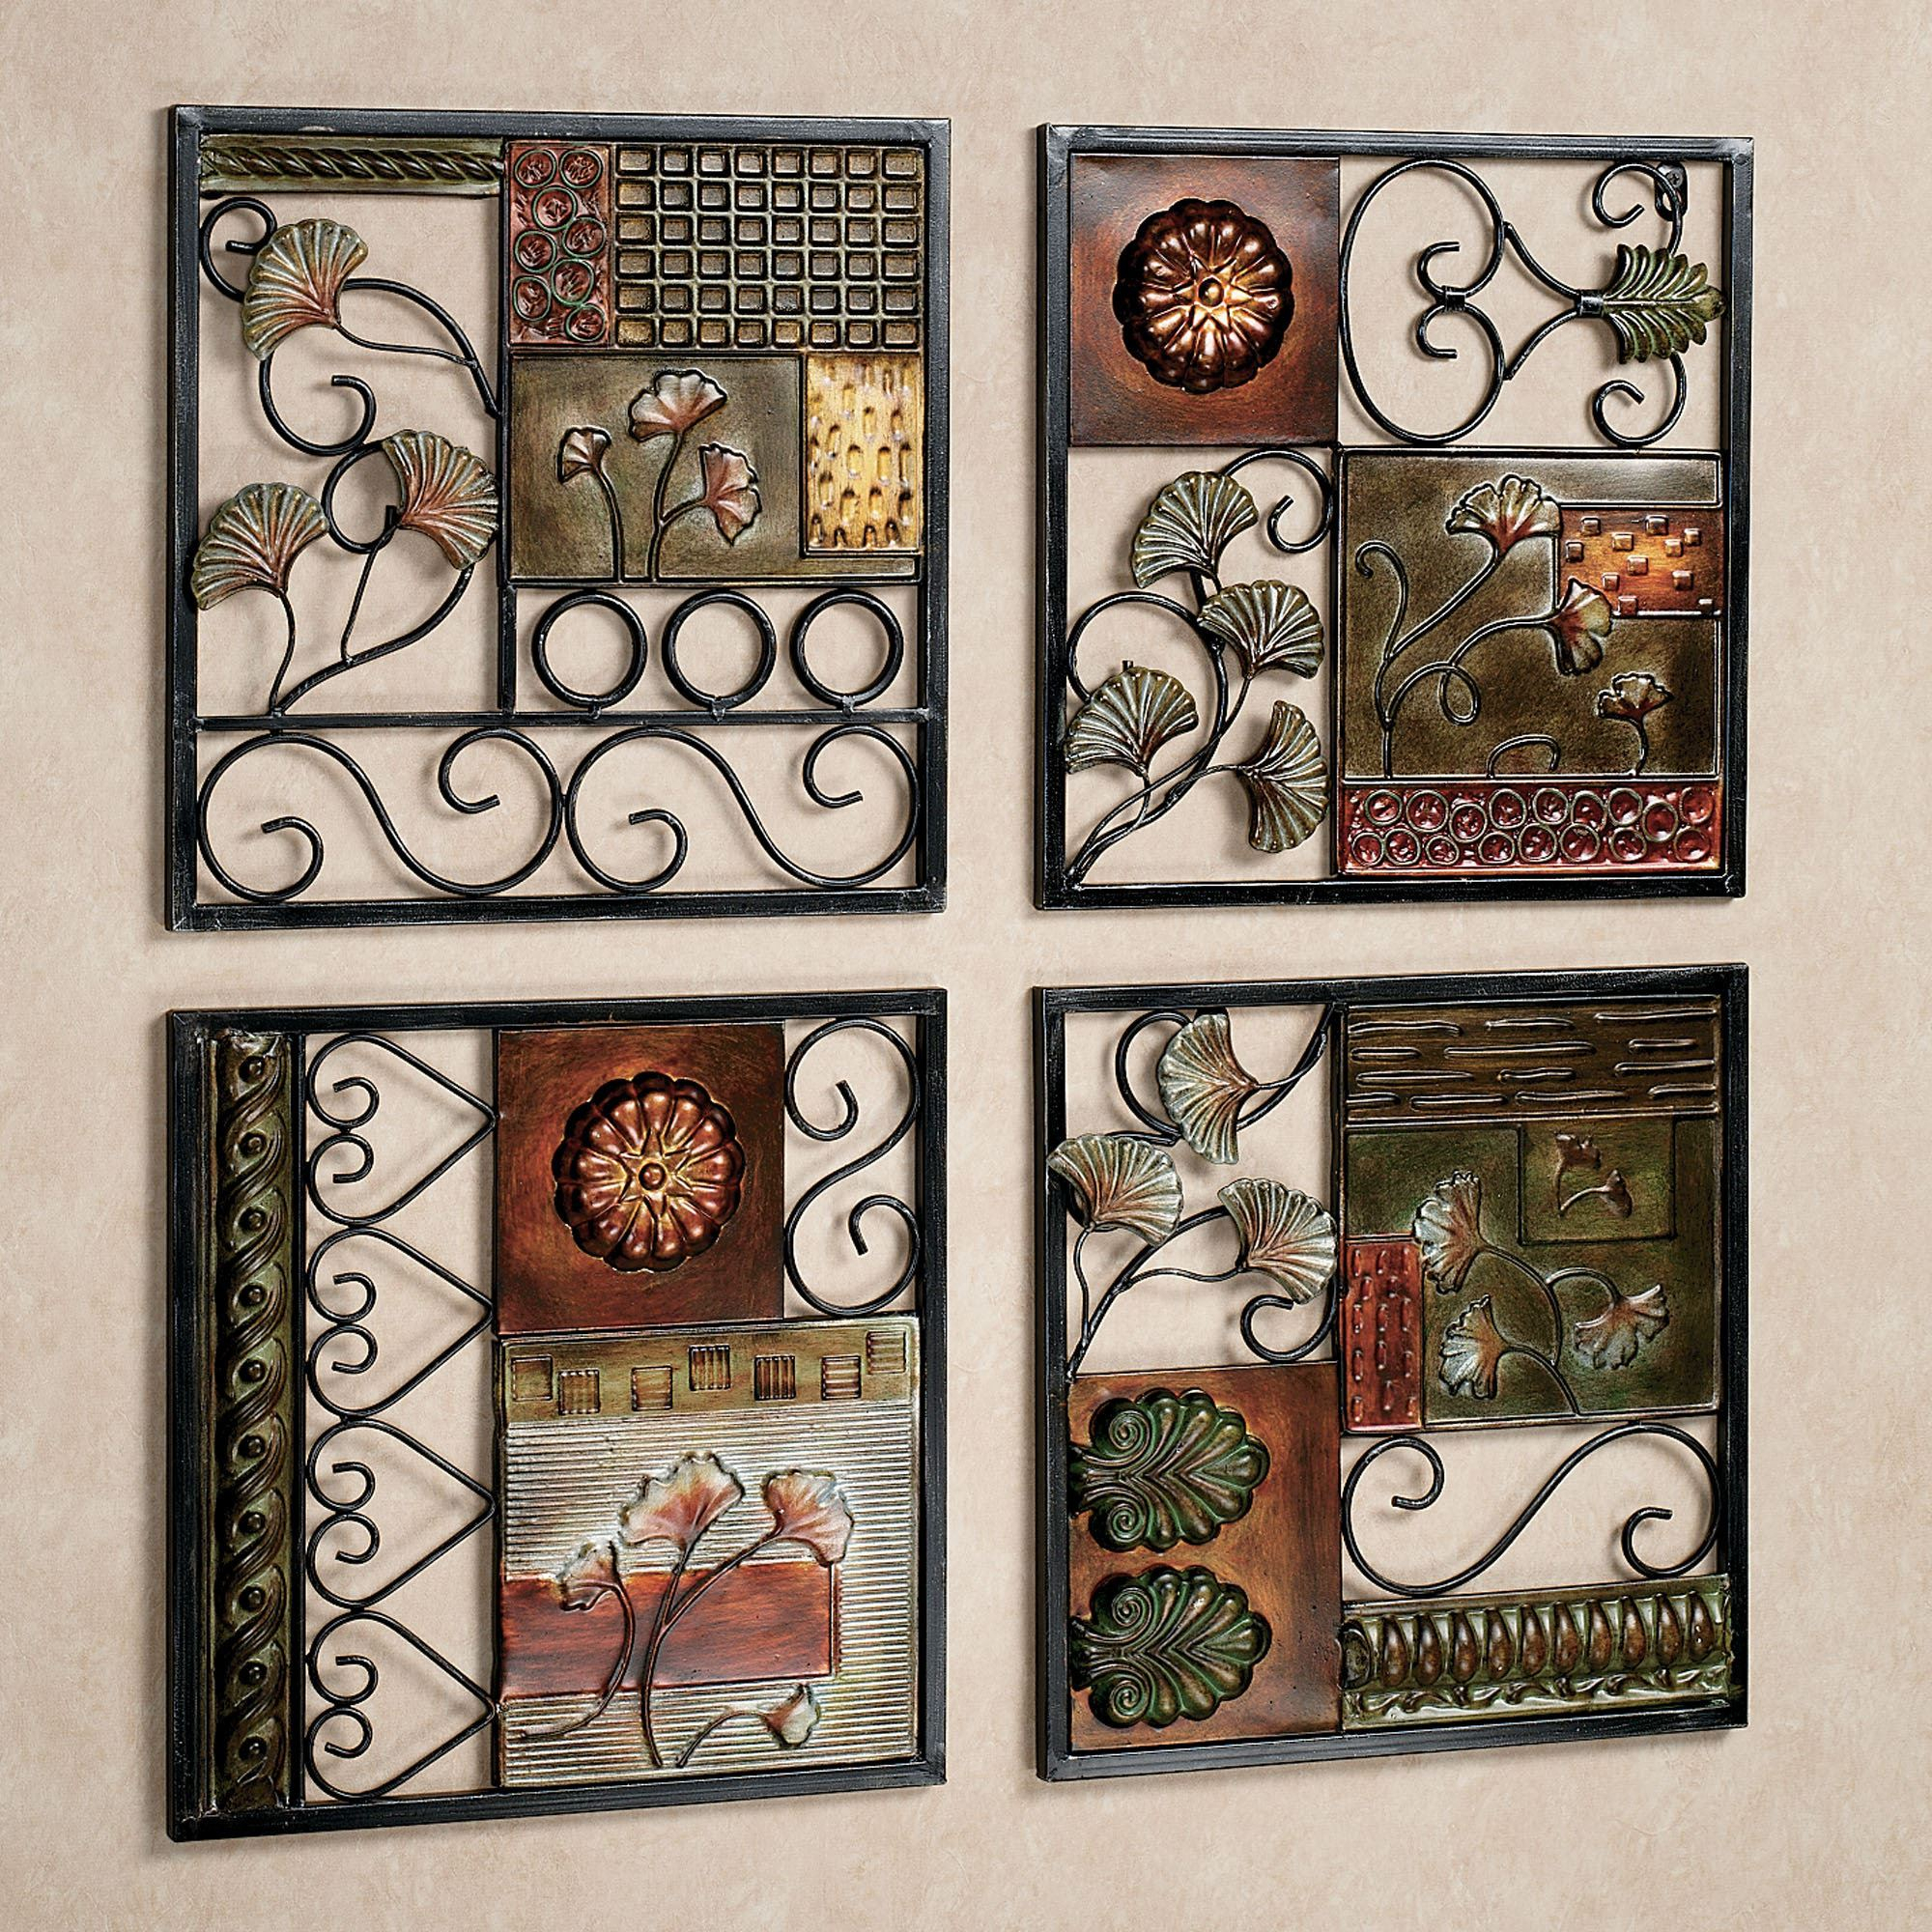 4 Piece Metal Wall Plaque Decor Sets With Regard To Most Current Dusk And Dawn Metal Wall Art Set (View 3 of 20)